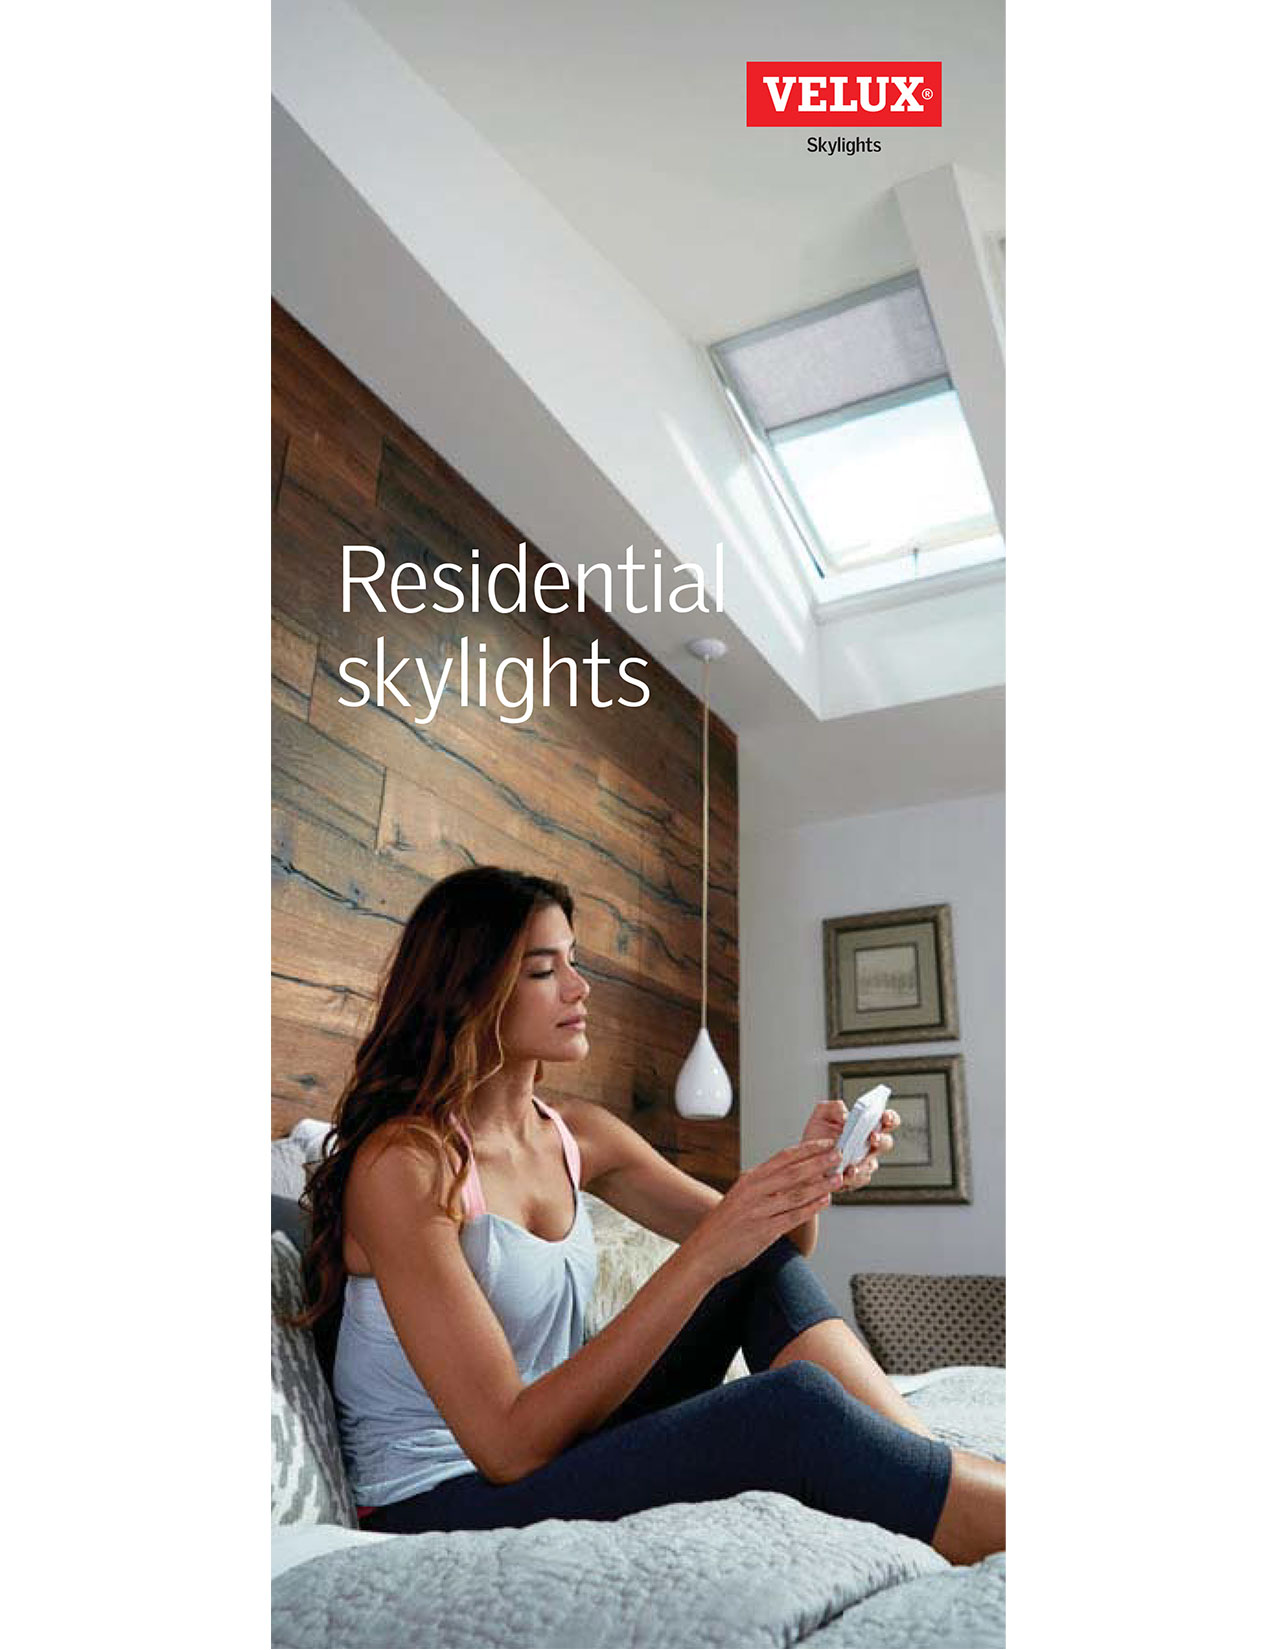 Residential skylight flyer